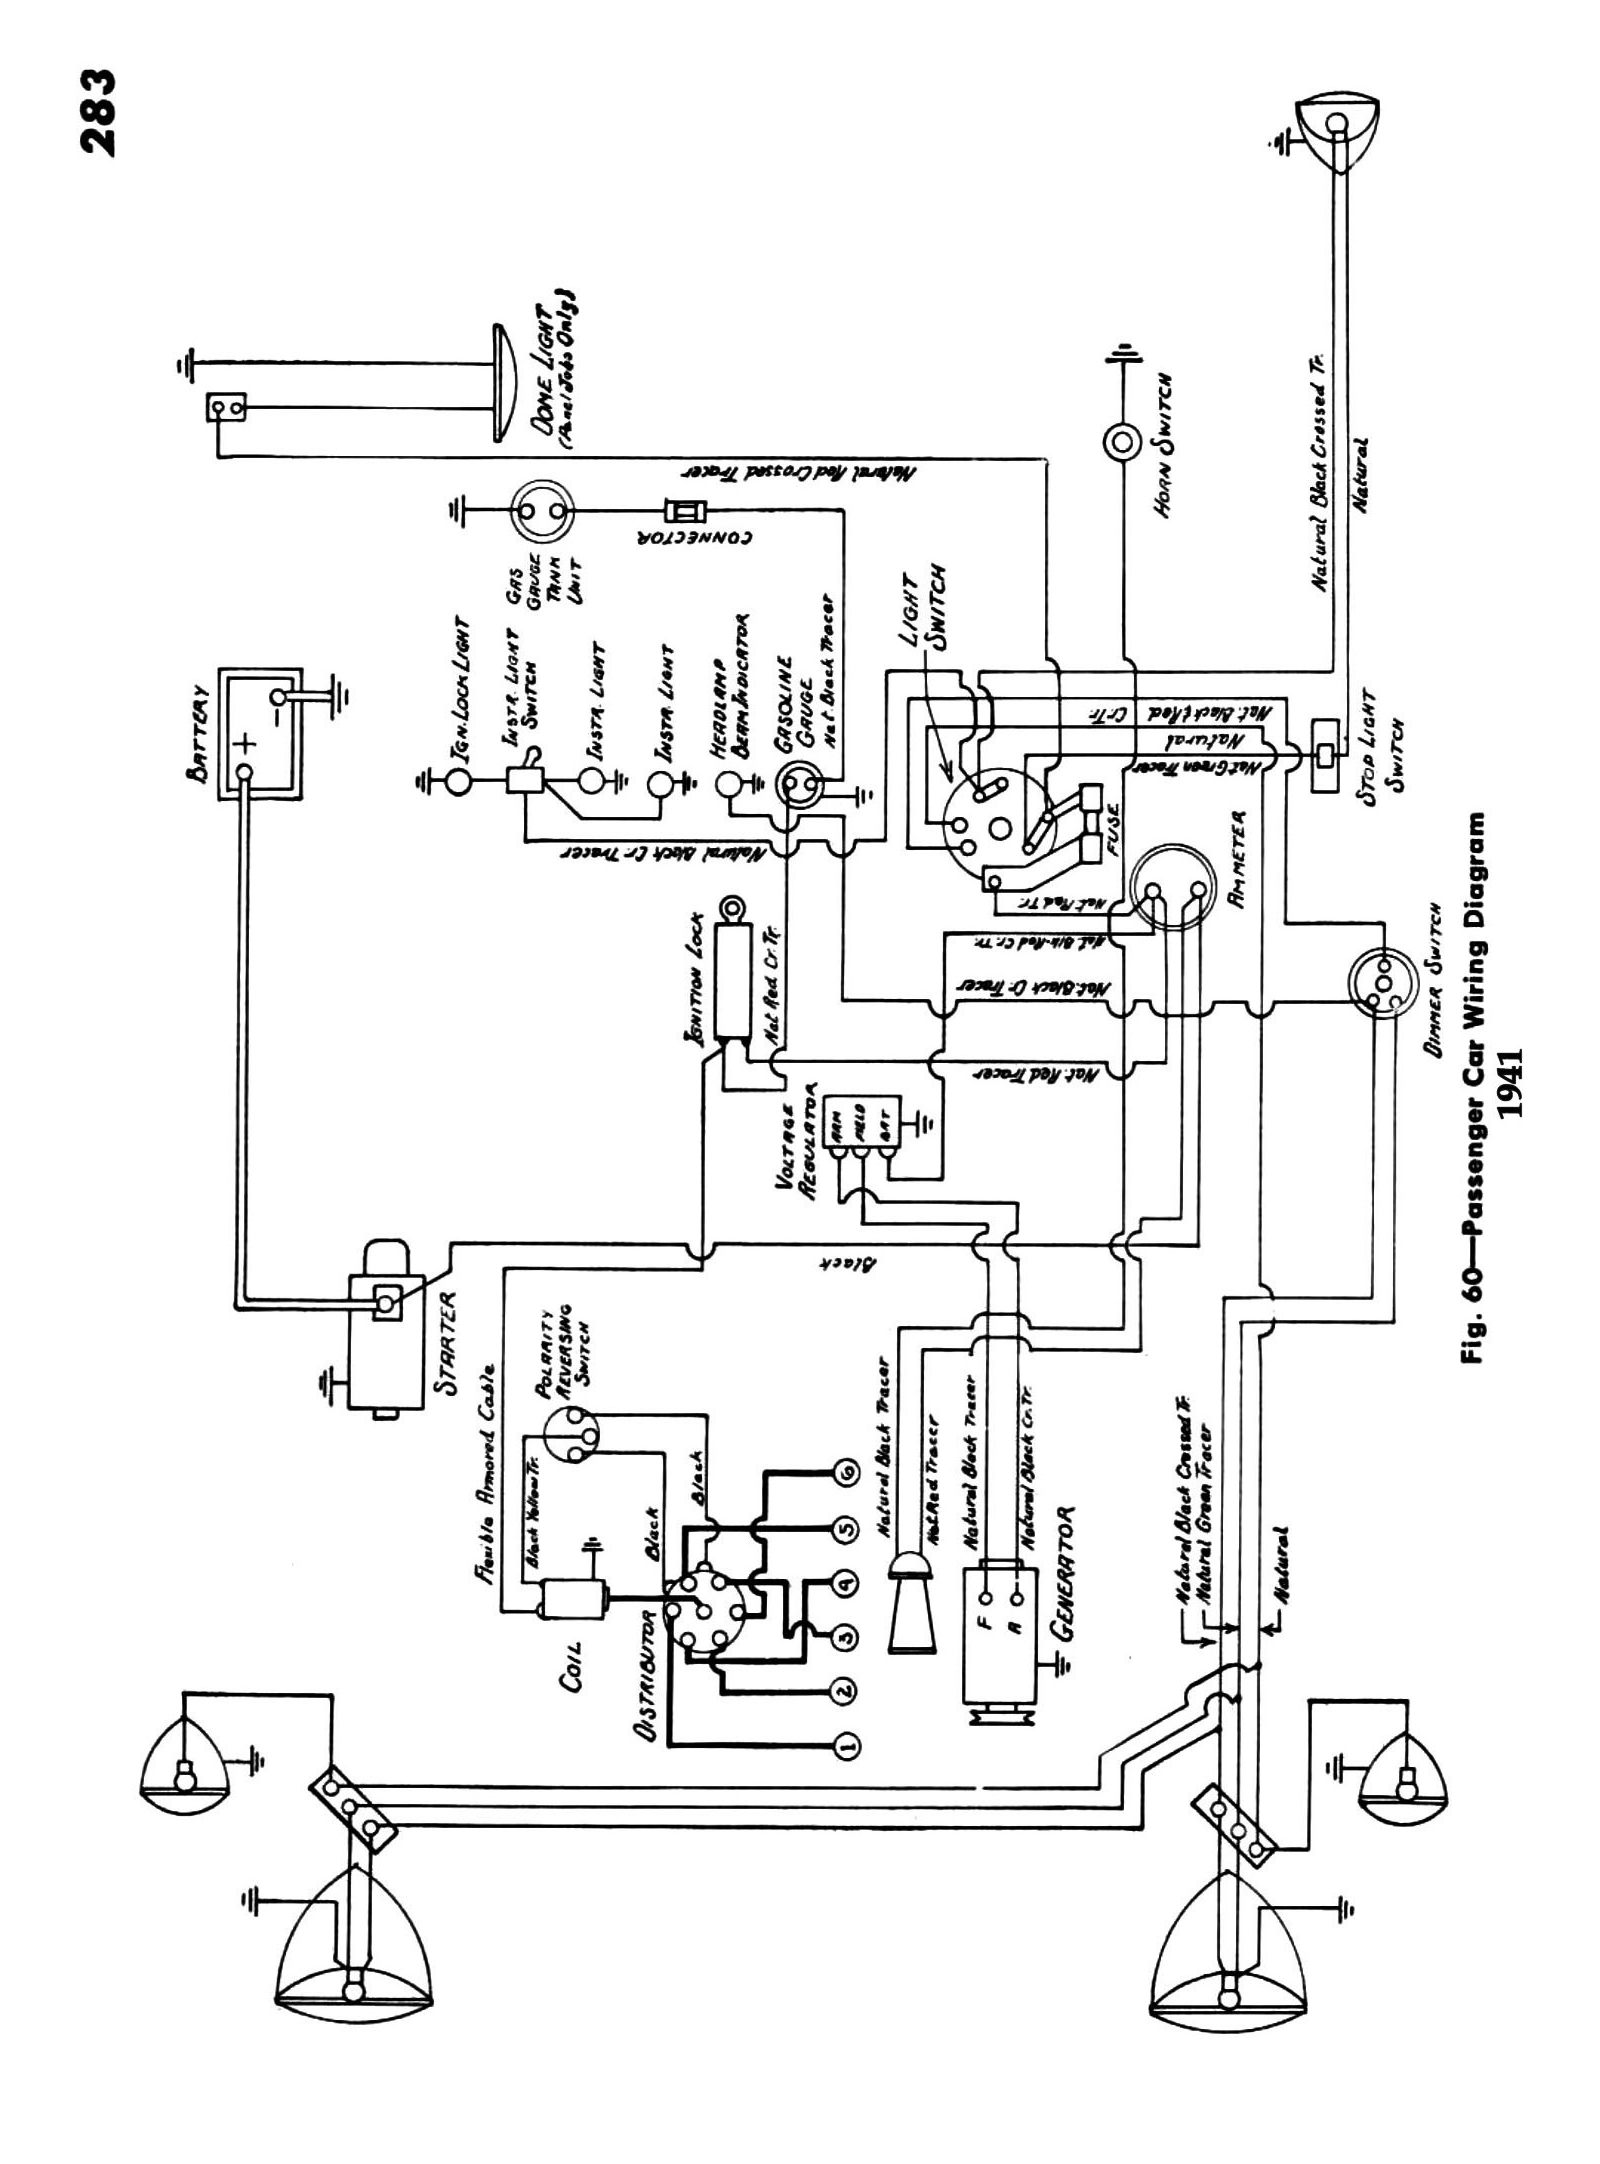 Chevy Wiring Diagrams 1941 Passenger Car